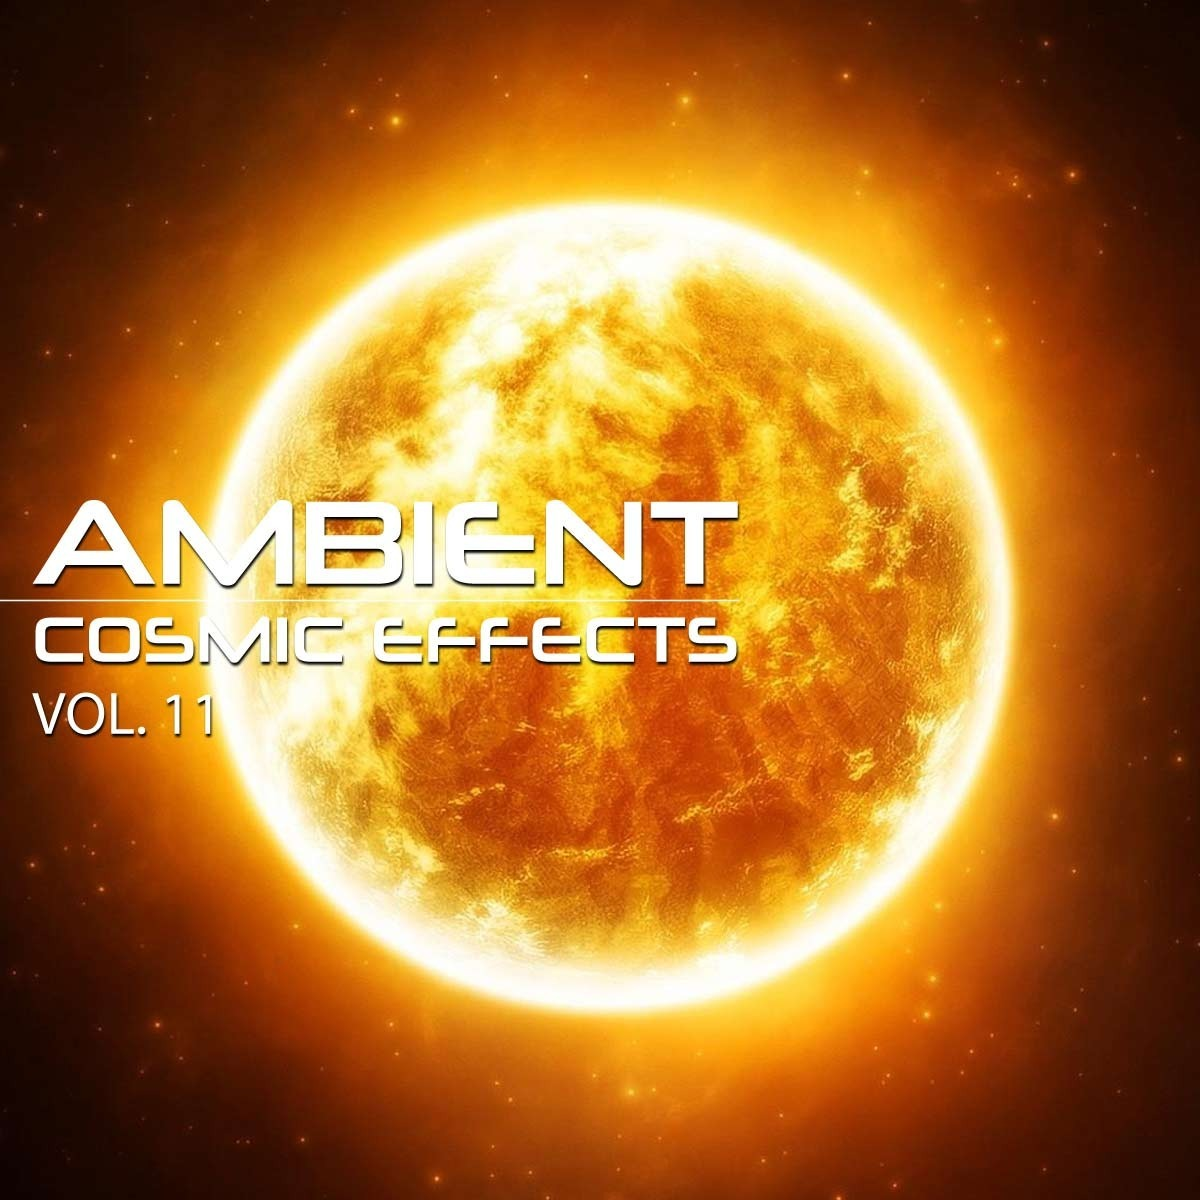 Ambient Cosmic Effects Vol 11